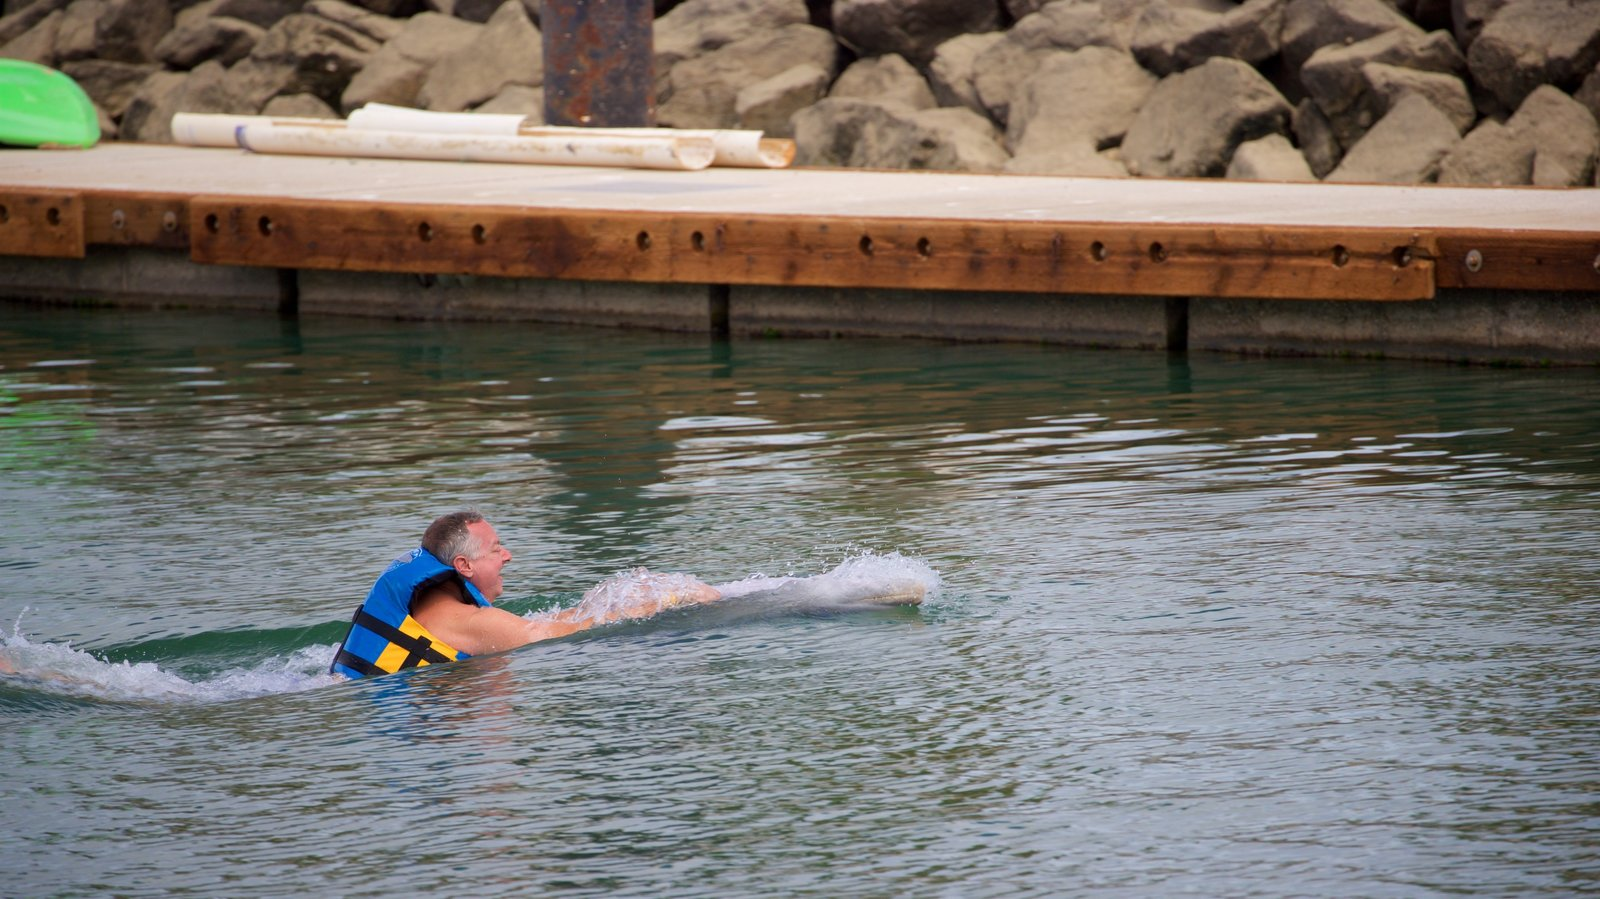 Dolphin Discovery Puerto Los Cabos which includes marine life and swimming as well as an individual male